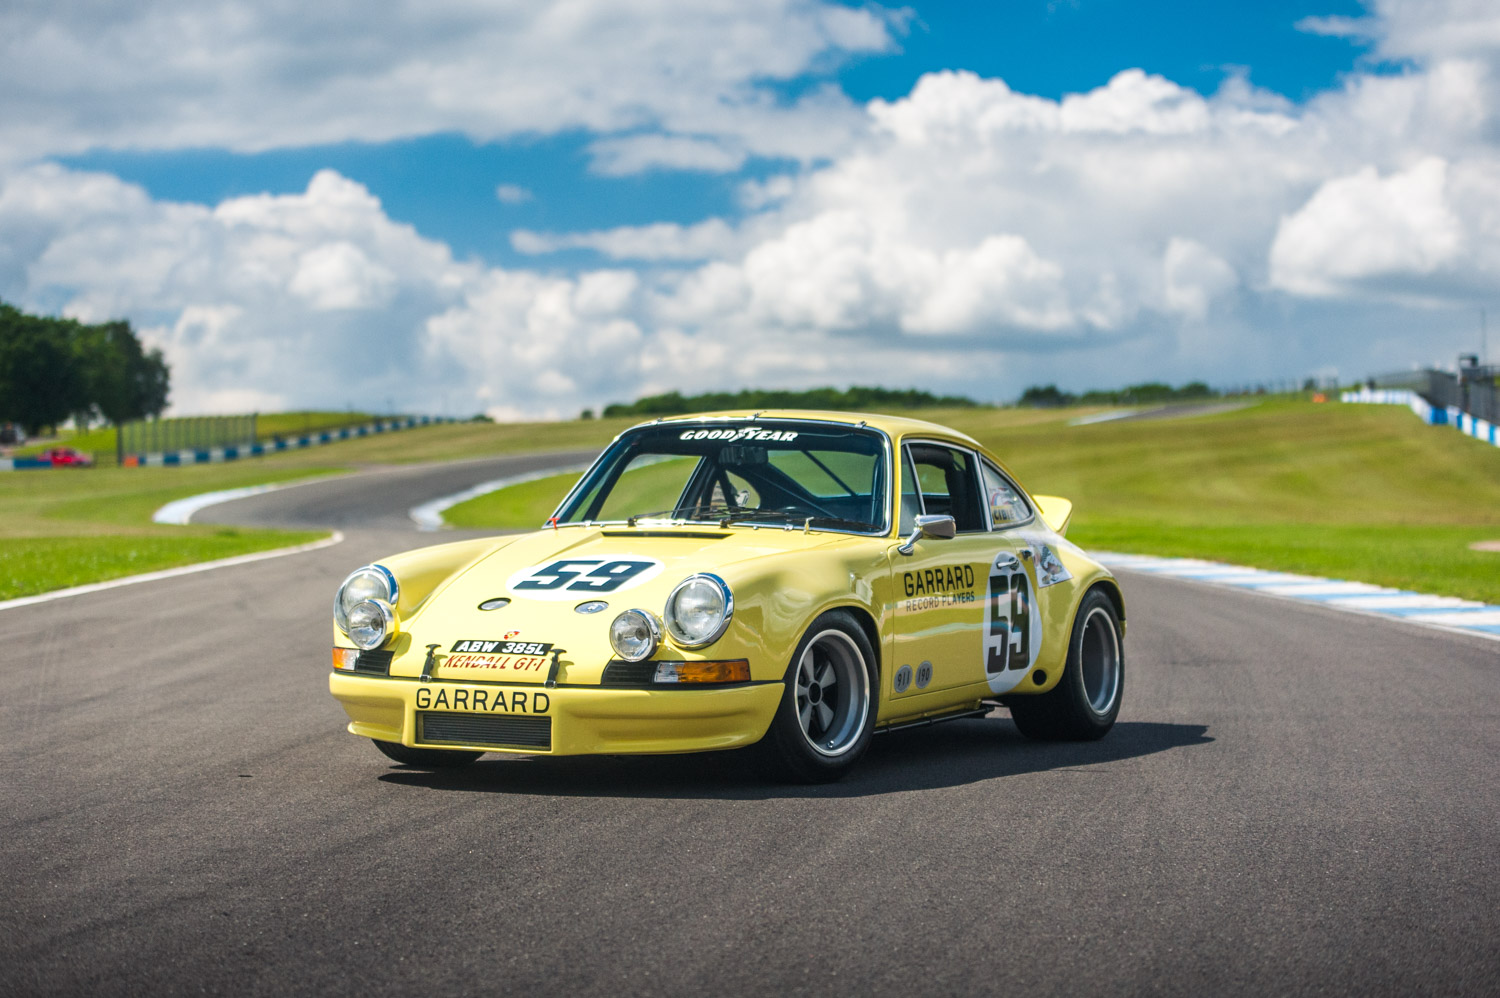 Jayson-Fong-Photography-Form-and-function-international-Brumos-Porsche-RSR.jpg